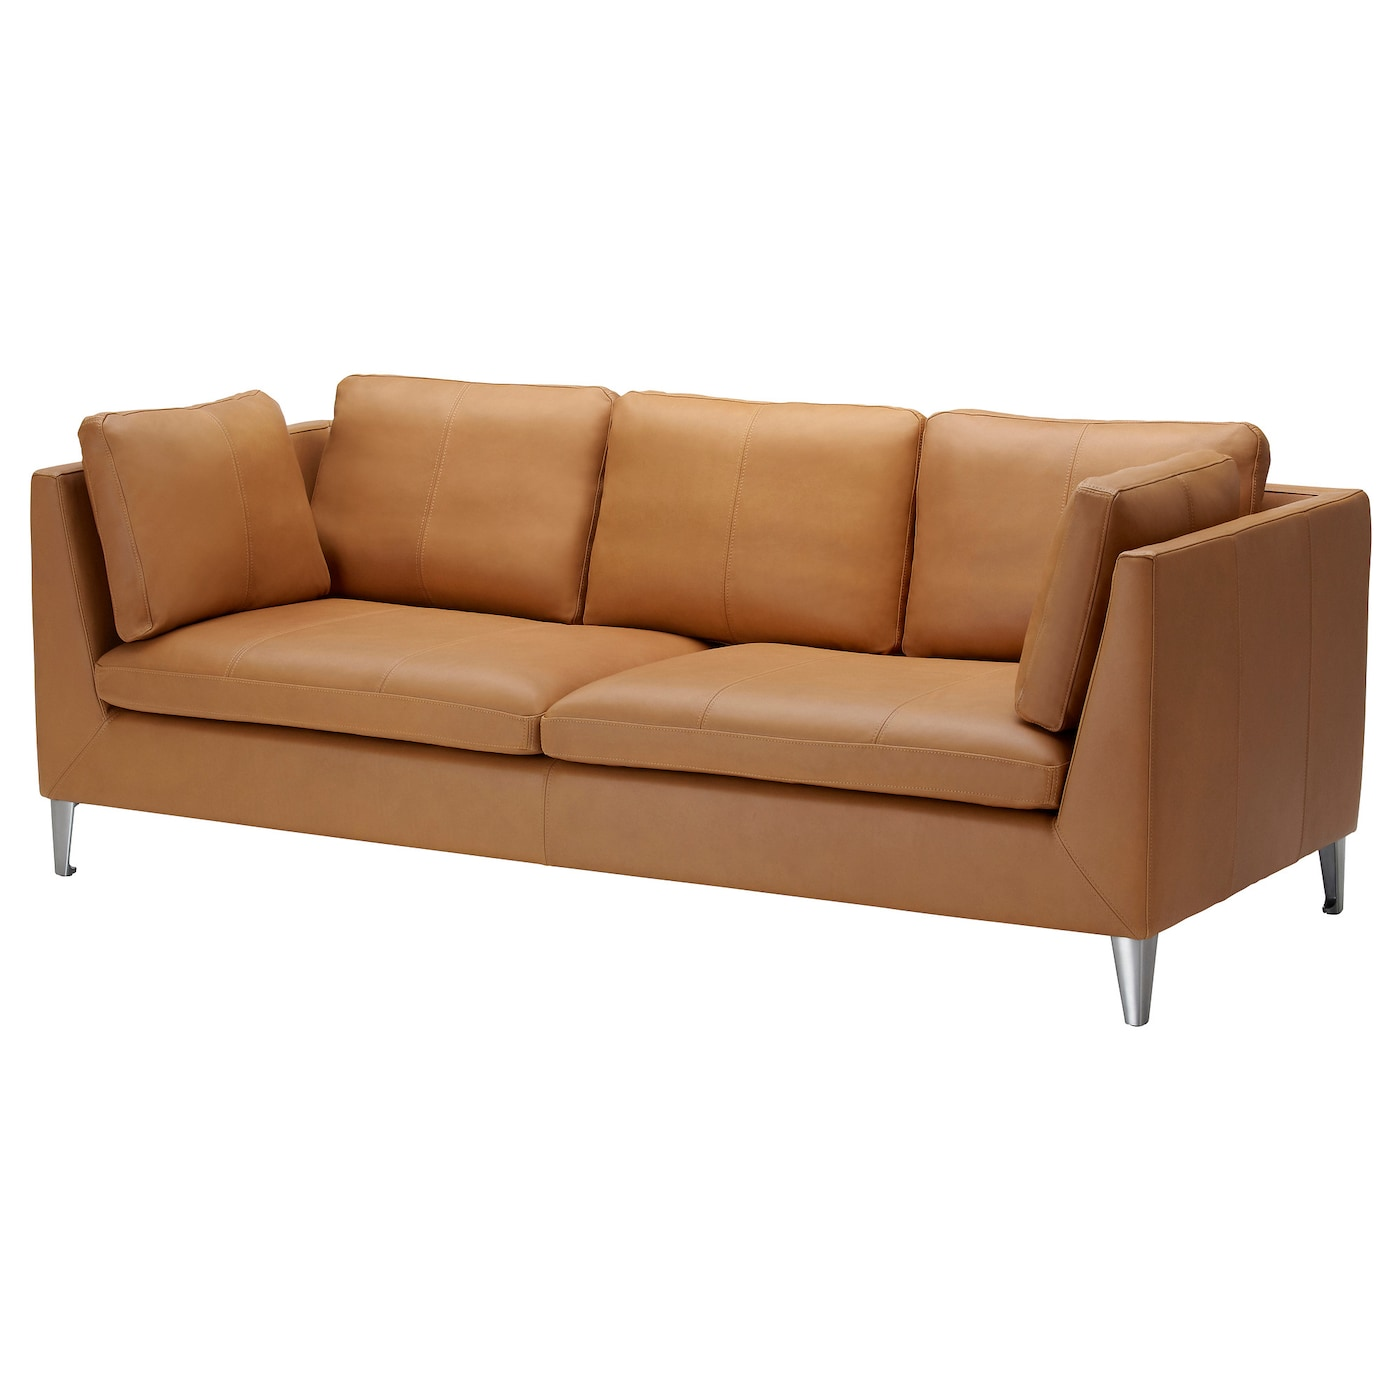 Stockholm three seat sofa seglora natural ikea for Sofas modulares de tela